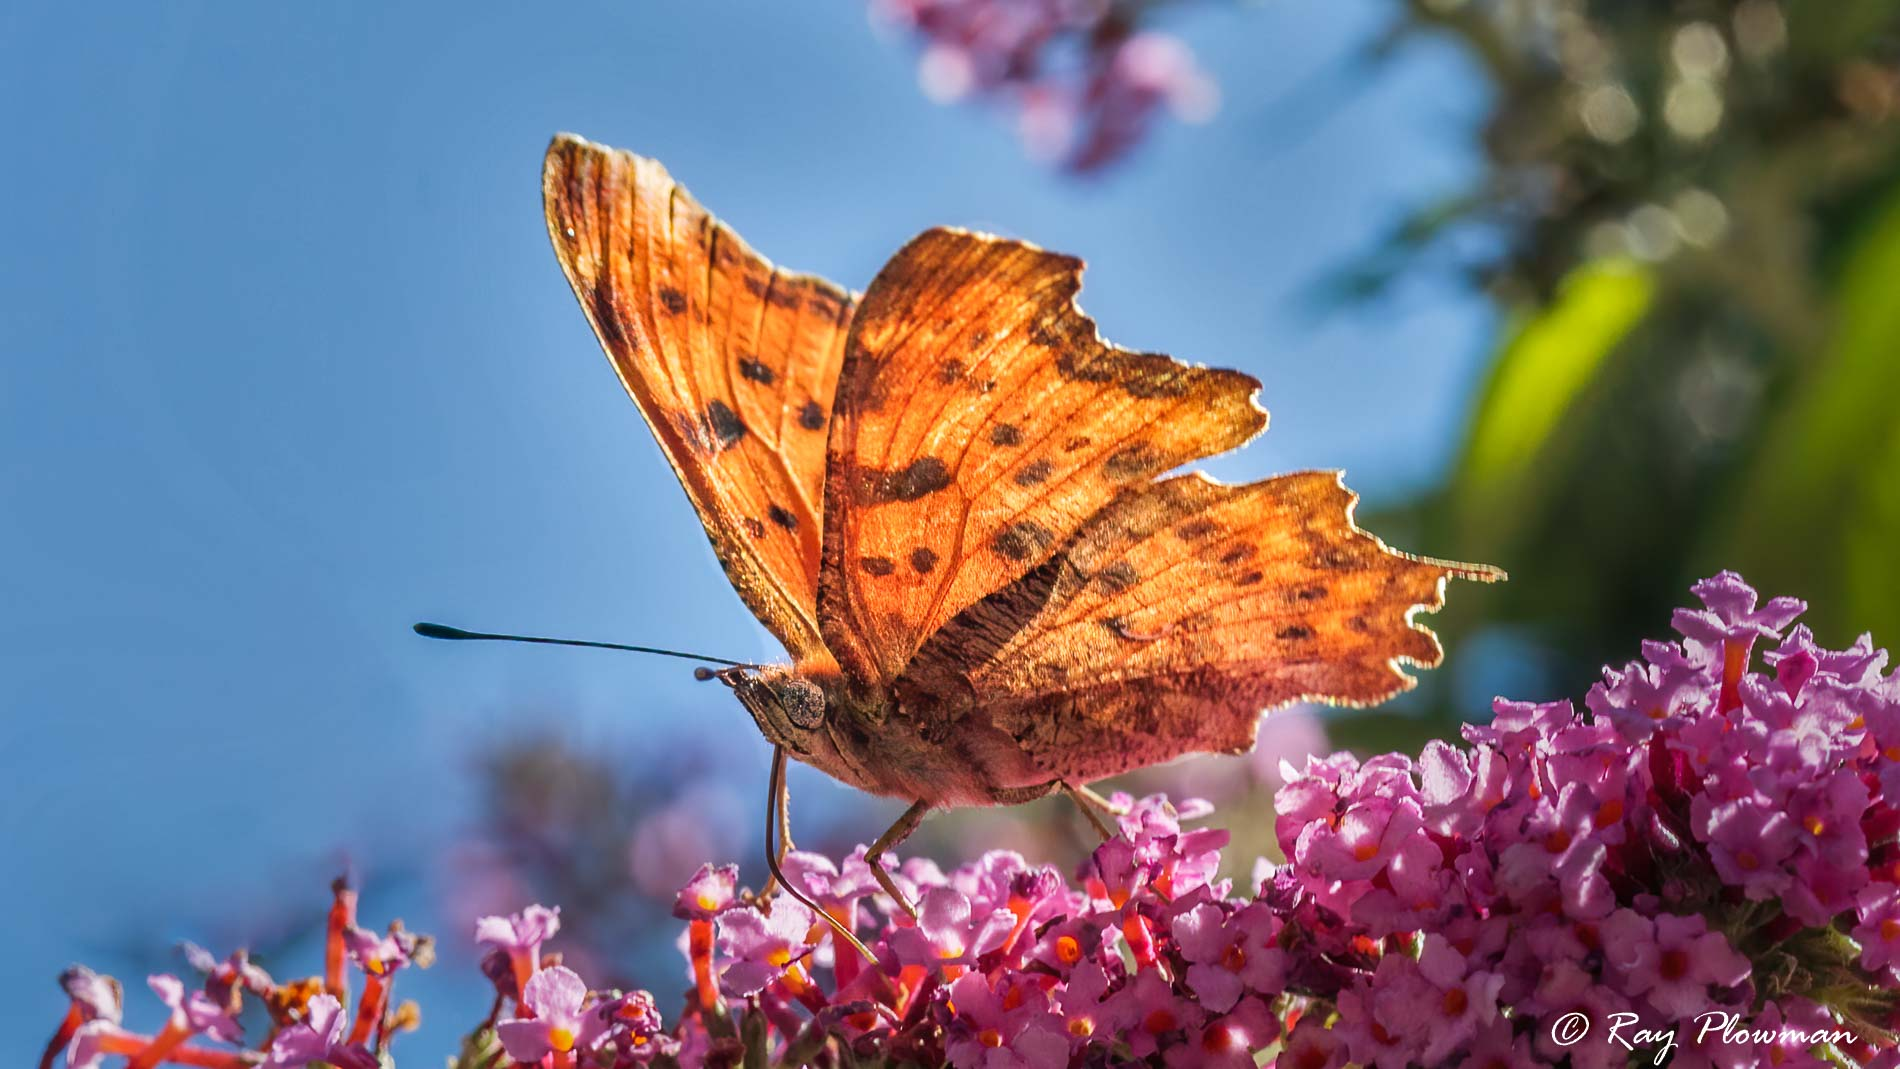 Comma (Polygonia c-album) feeding on buddleia nectar at Bouisse in Languedoc-Roussillon, France